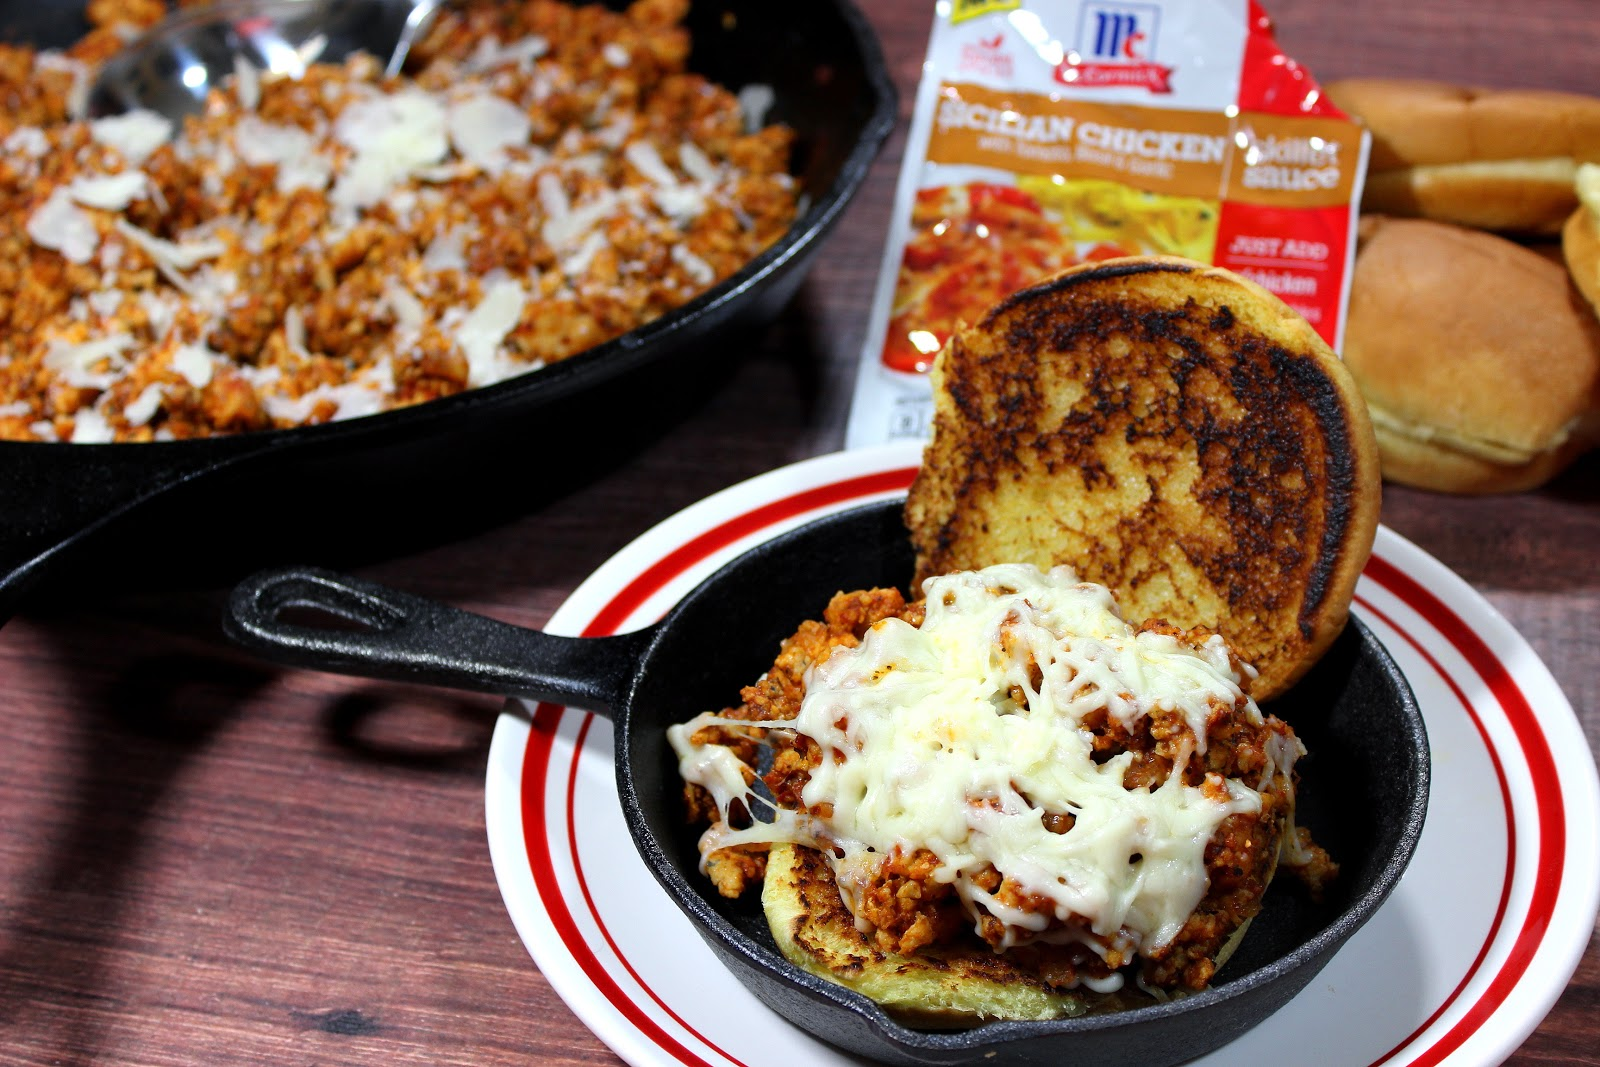 Sloppy Skillet Chicken Parmesan has all of the flavor you love of traditional chicken Parmesan, but with none of the fuss. And it's ready in a fraction of the time.